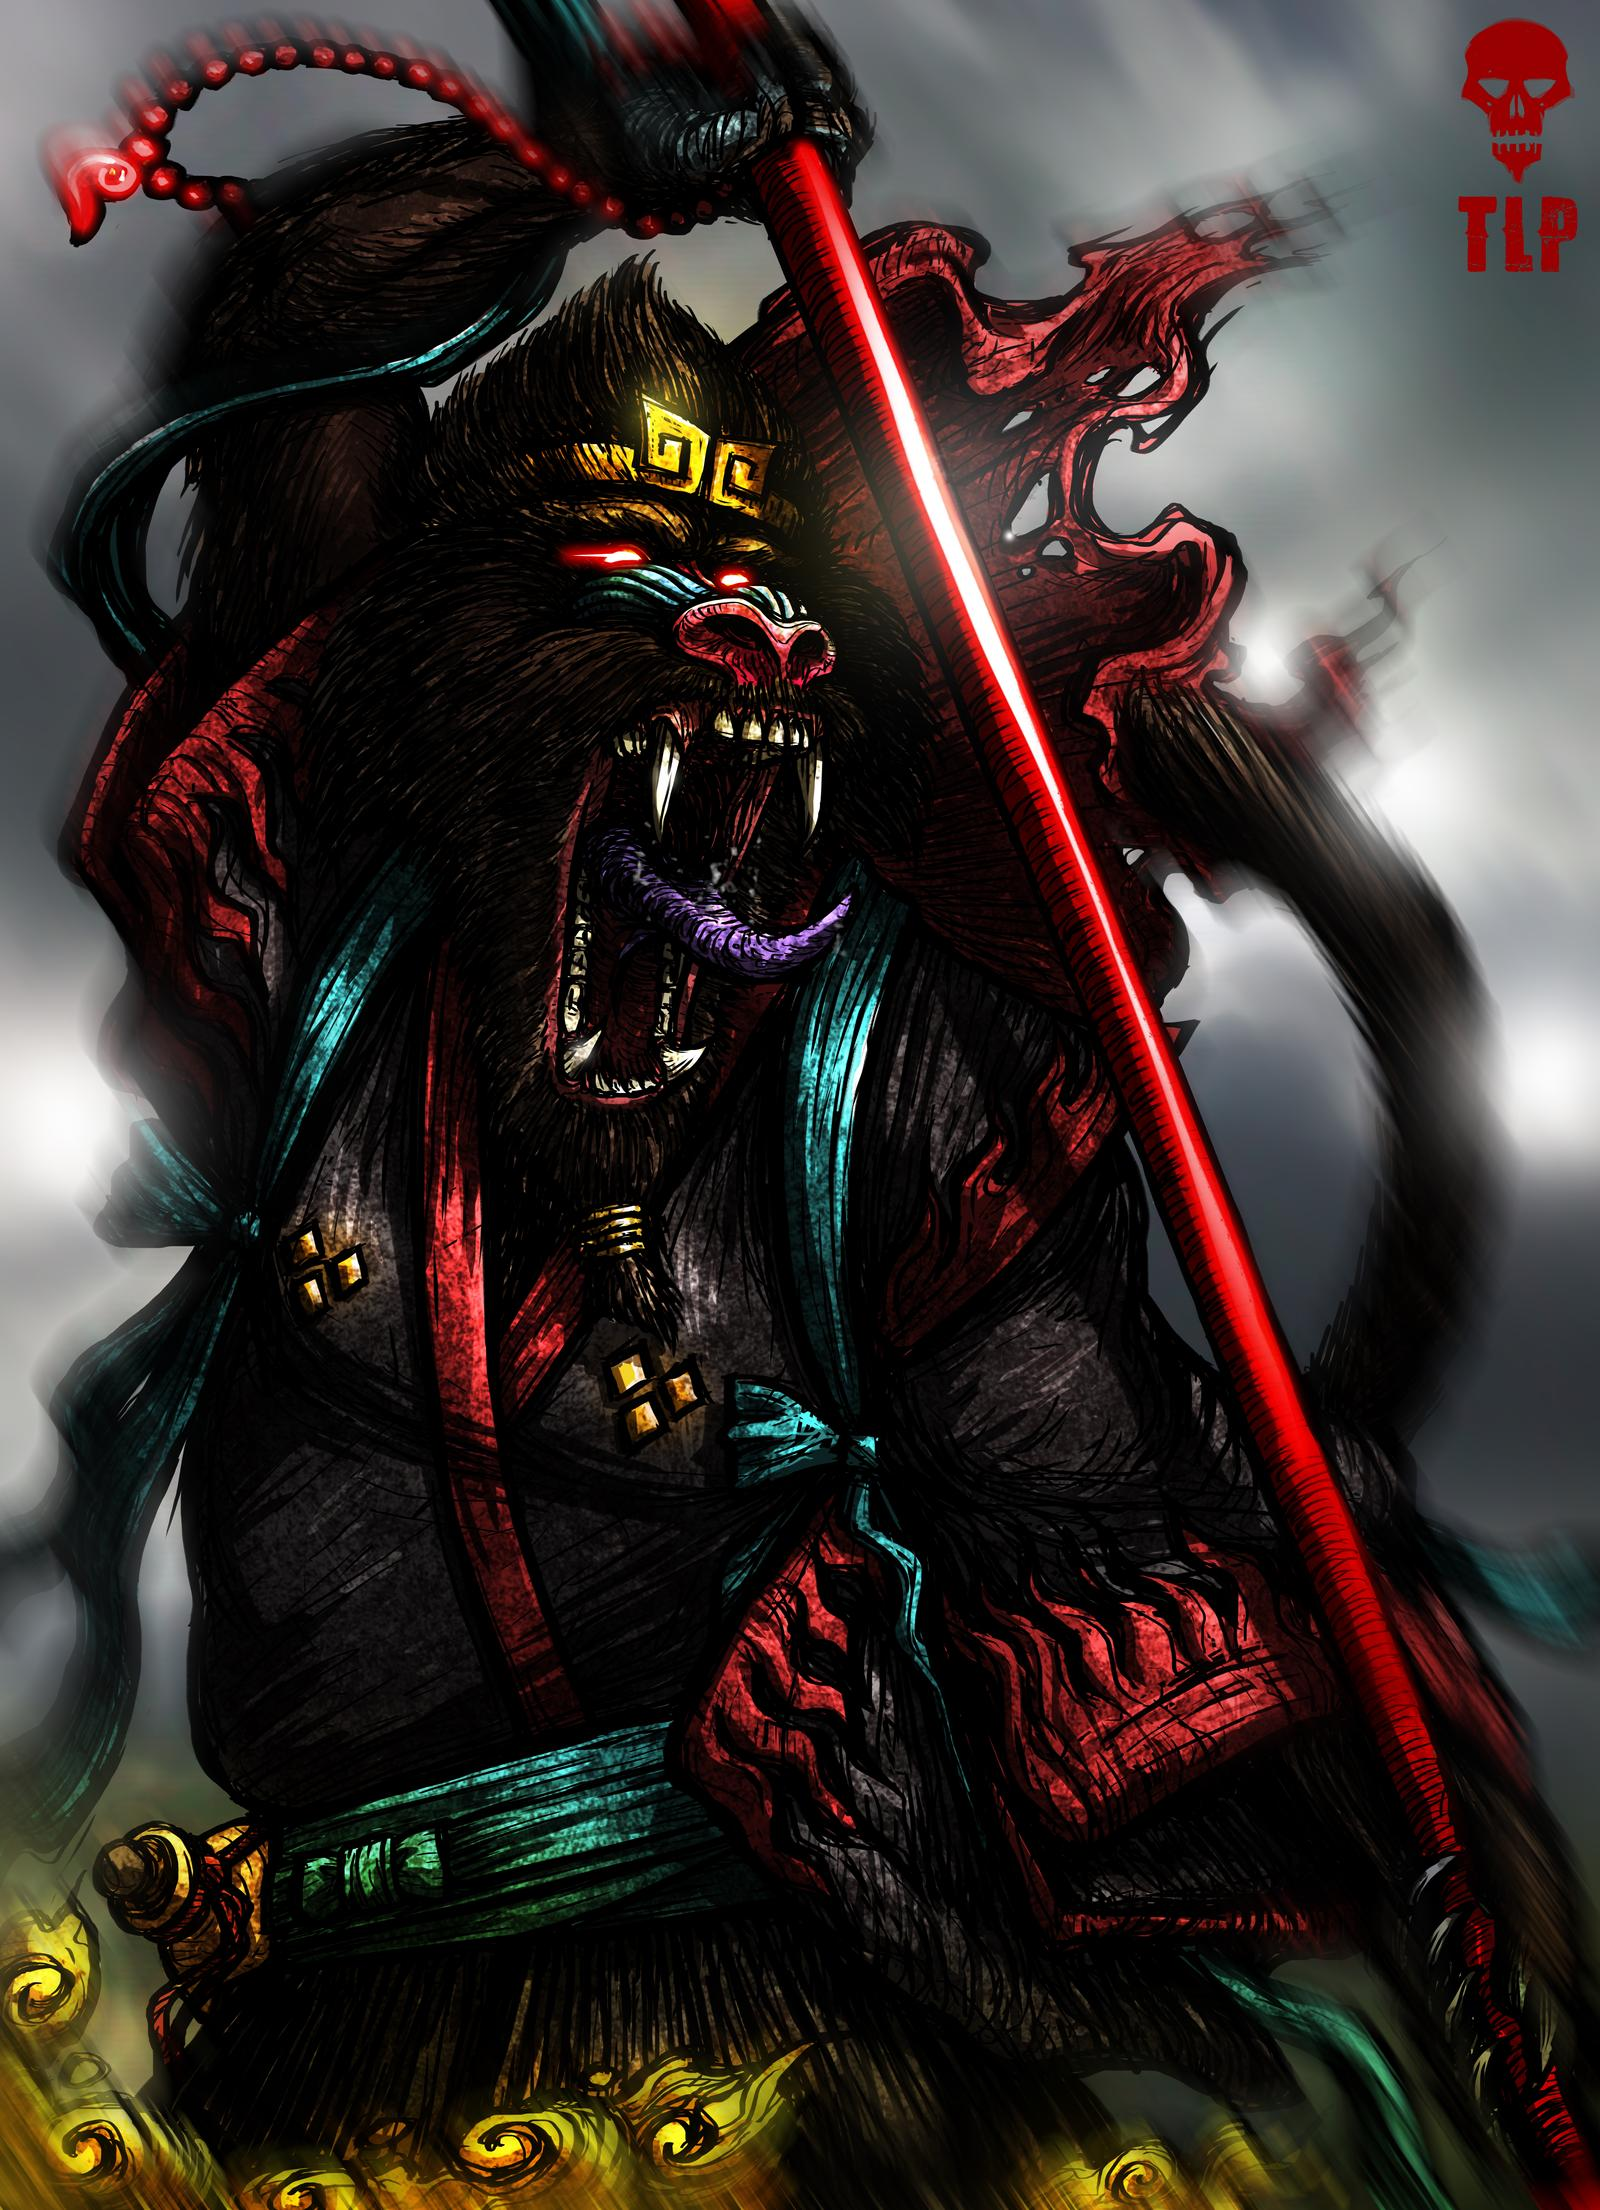 son_goku__sun_wukong____journey_to_the_west_by_the_last_phantom_d8vbx31-fullview